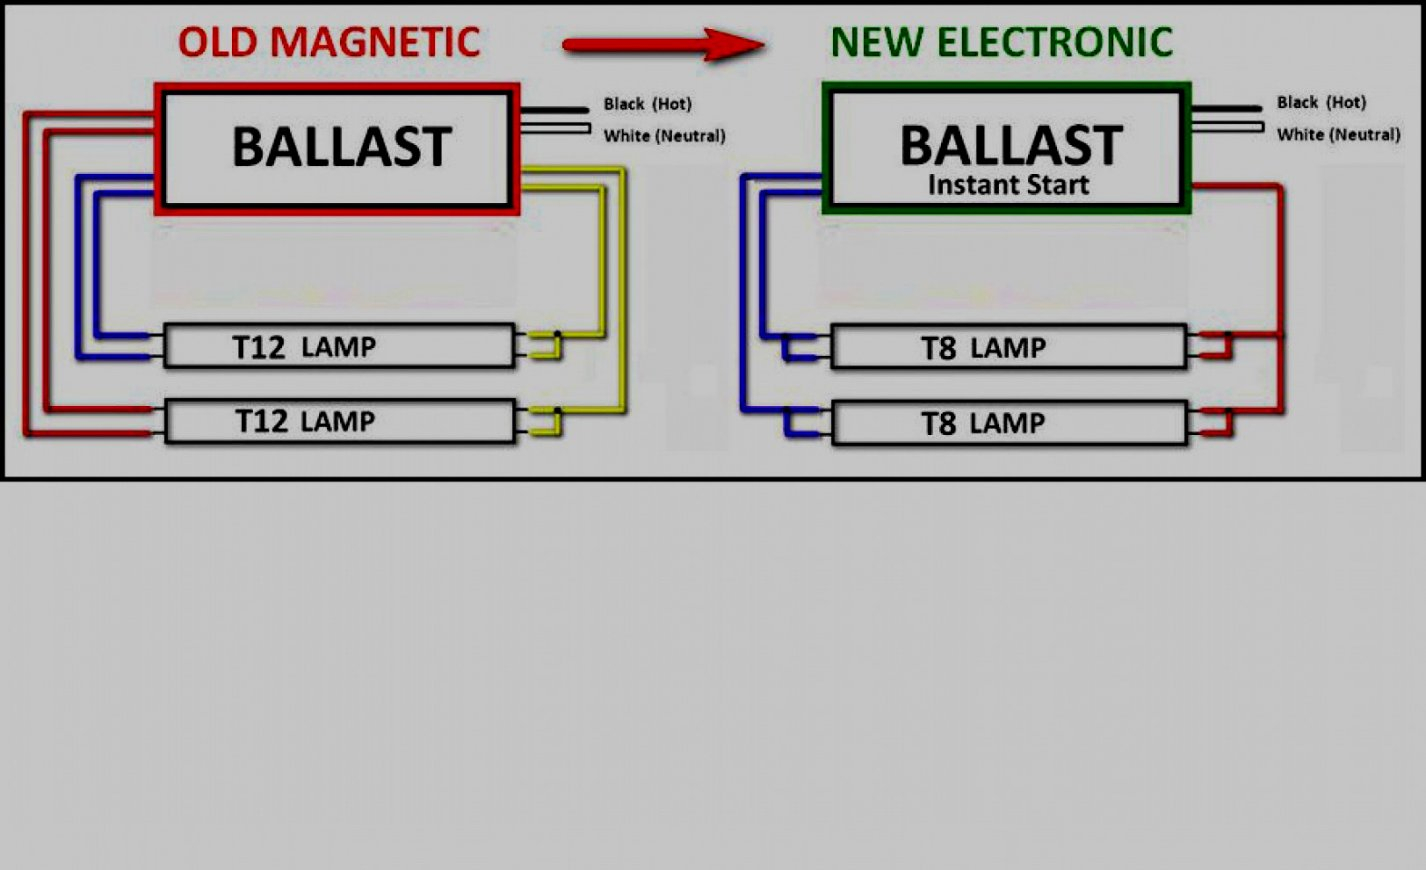 T12 Ballast Wiring Diagram 1 Lamp And 2 Lamp Fluorescent Ballast - 2 Lamp T12 Ballast Wiring Diagram